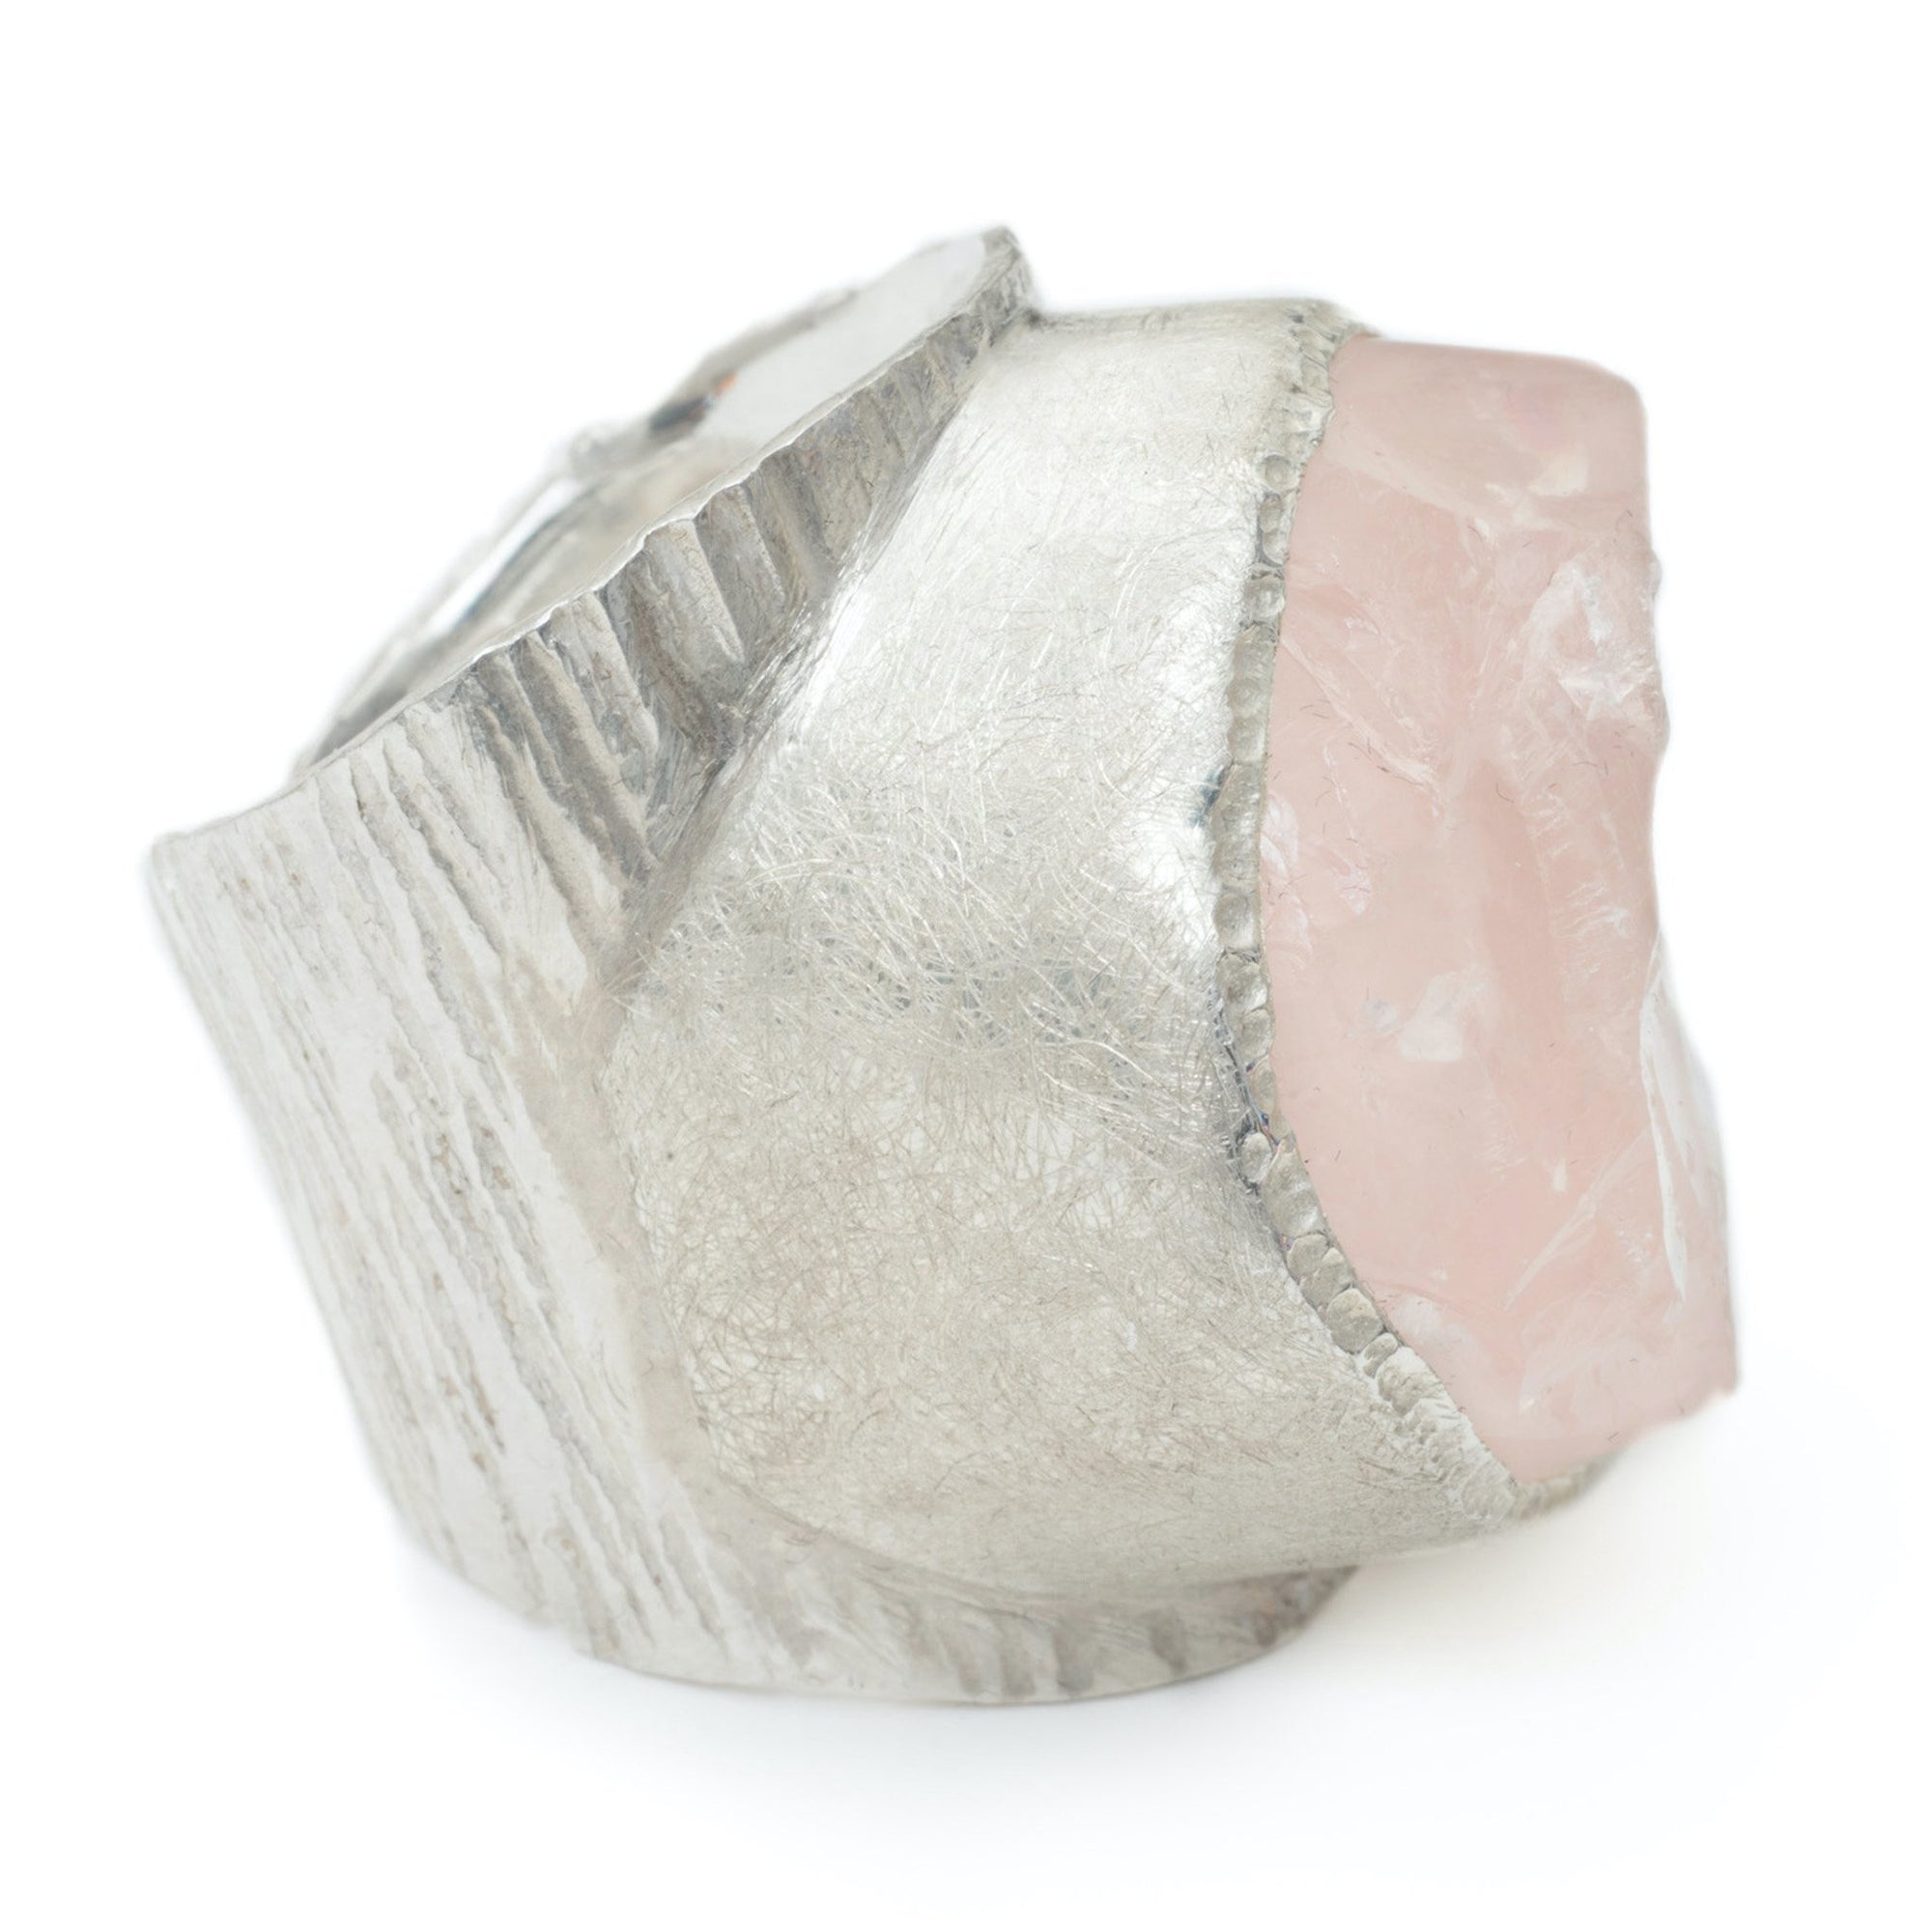 'Lover' Rose Quartz Macho Ring - Large Stone